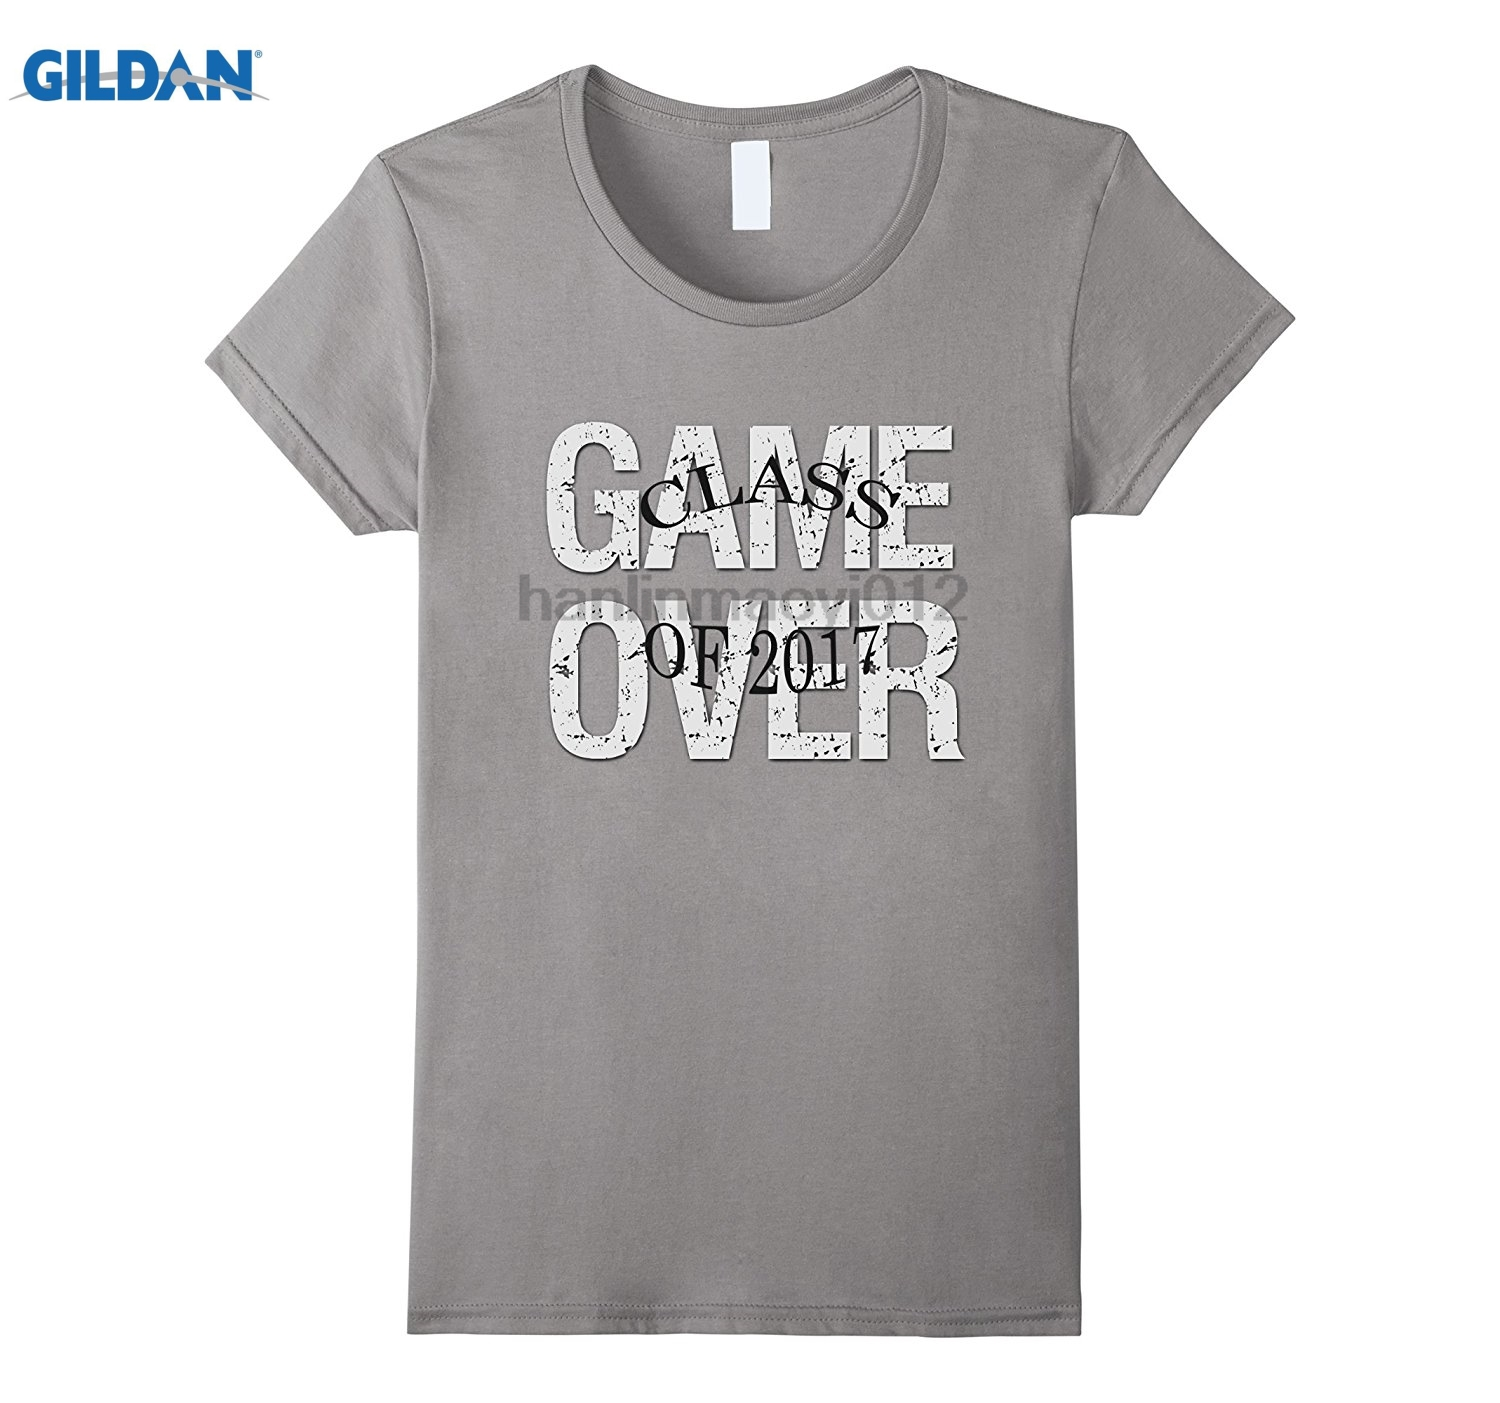 GILDAN Game Over High School Collage Graduation Gift Tshirt 2018 Latest Hot Cotton T-Shi ...